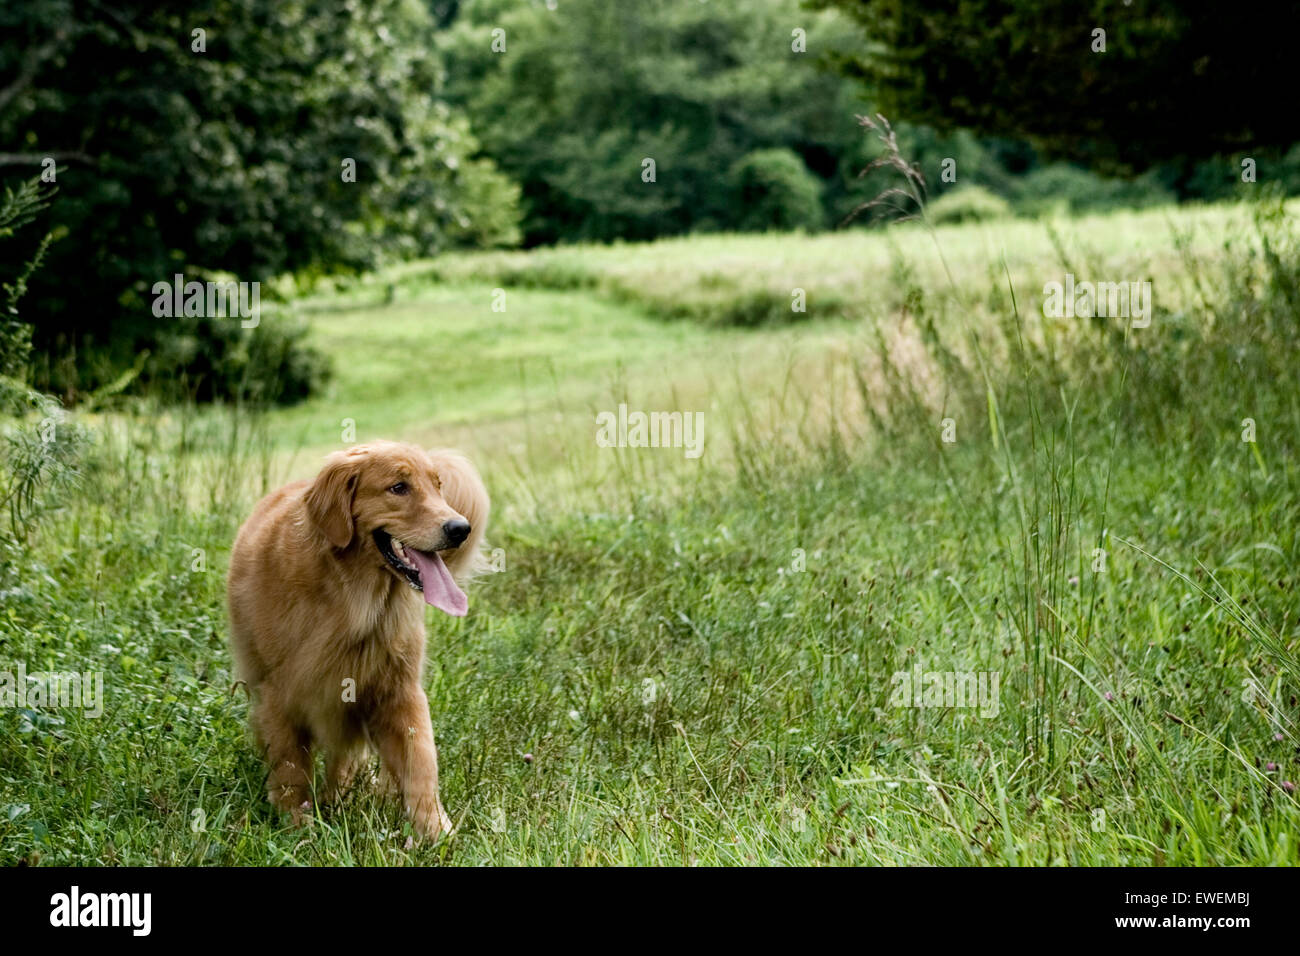 Adult Golden Retriever dog strolling through a vast grassy field with a background of trees out in nature - Stock Image